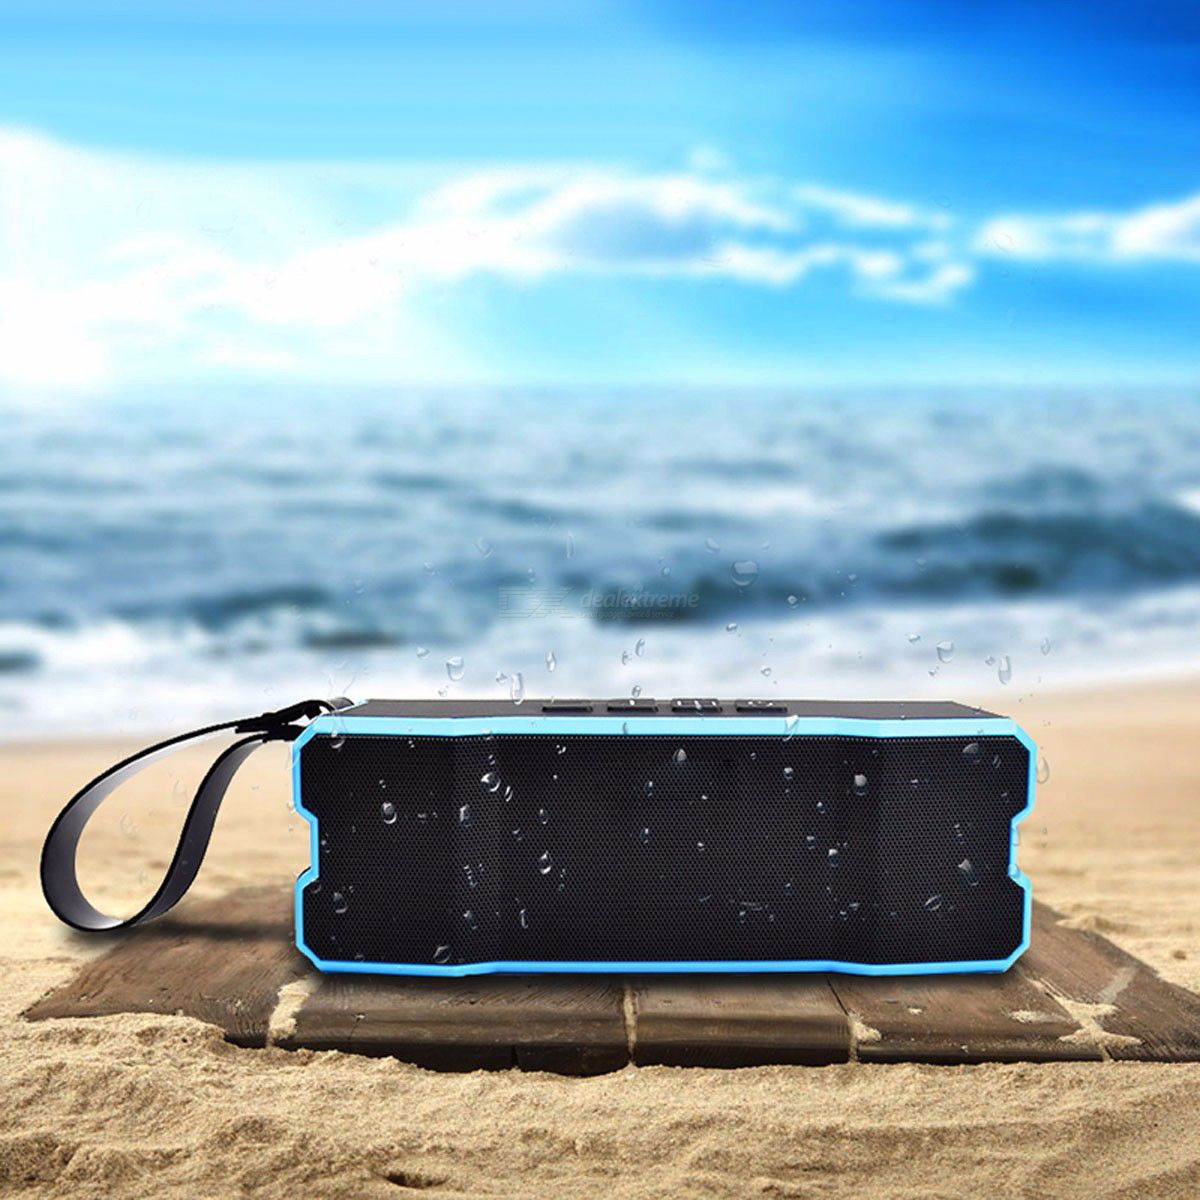 IPX67 Waterproof Portable FM Bluetooth Speaker Outdoor Cycling Home Stereo  Wireless Speaker For Phone Laptops Black 969b0f00b0c48